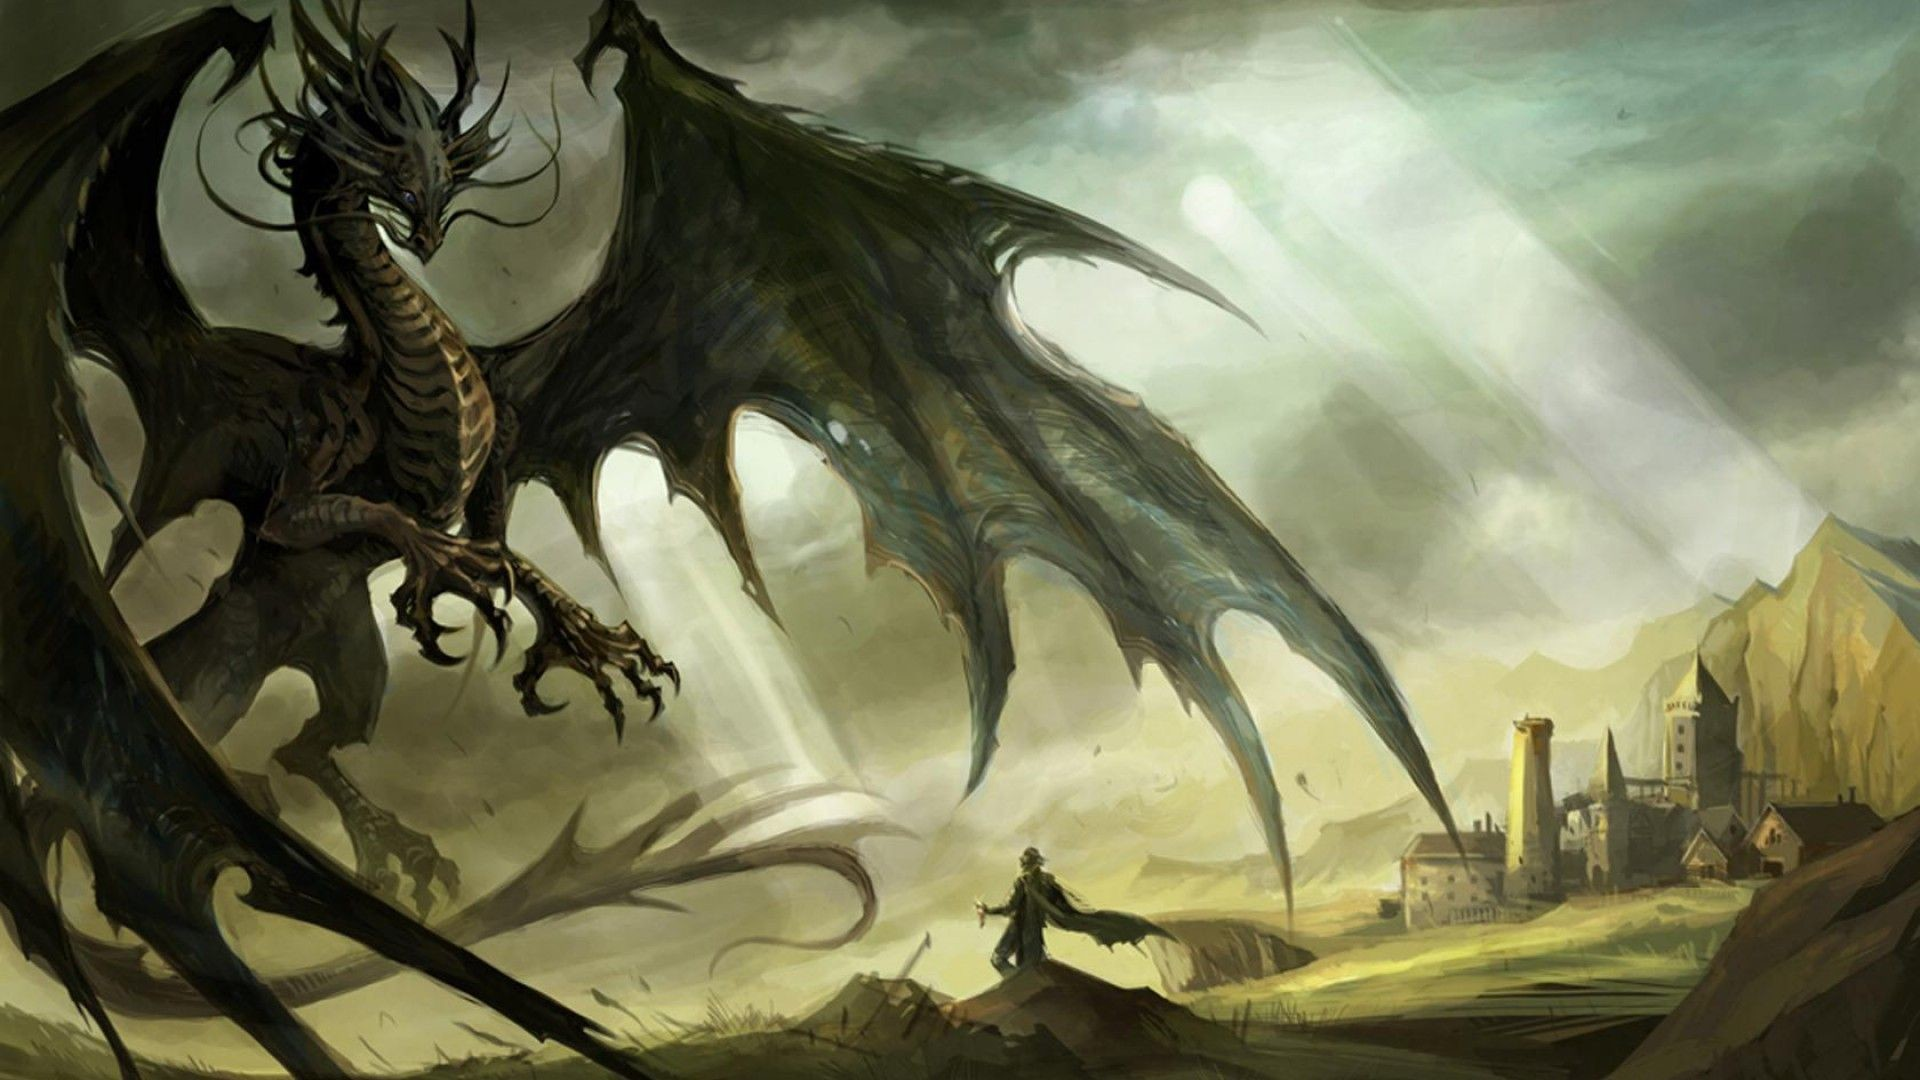 Dragons wallpapers hd 73 pictures 1920x1080 video games fantasy art the elder scrolls v skyrim dragon wallpapers hd desktop and mobile backgrounds voltagebd Choice Image